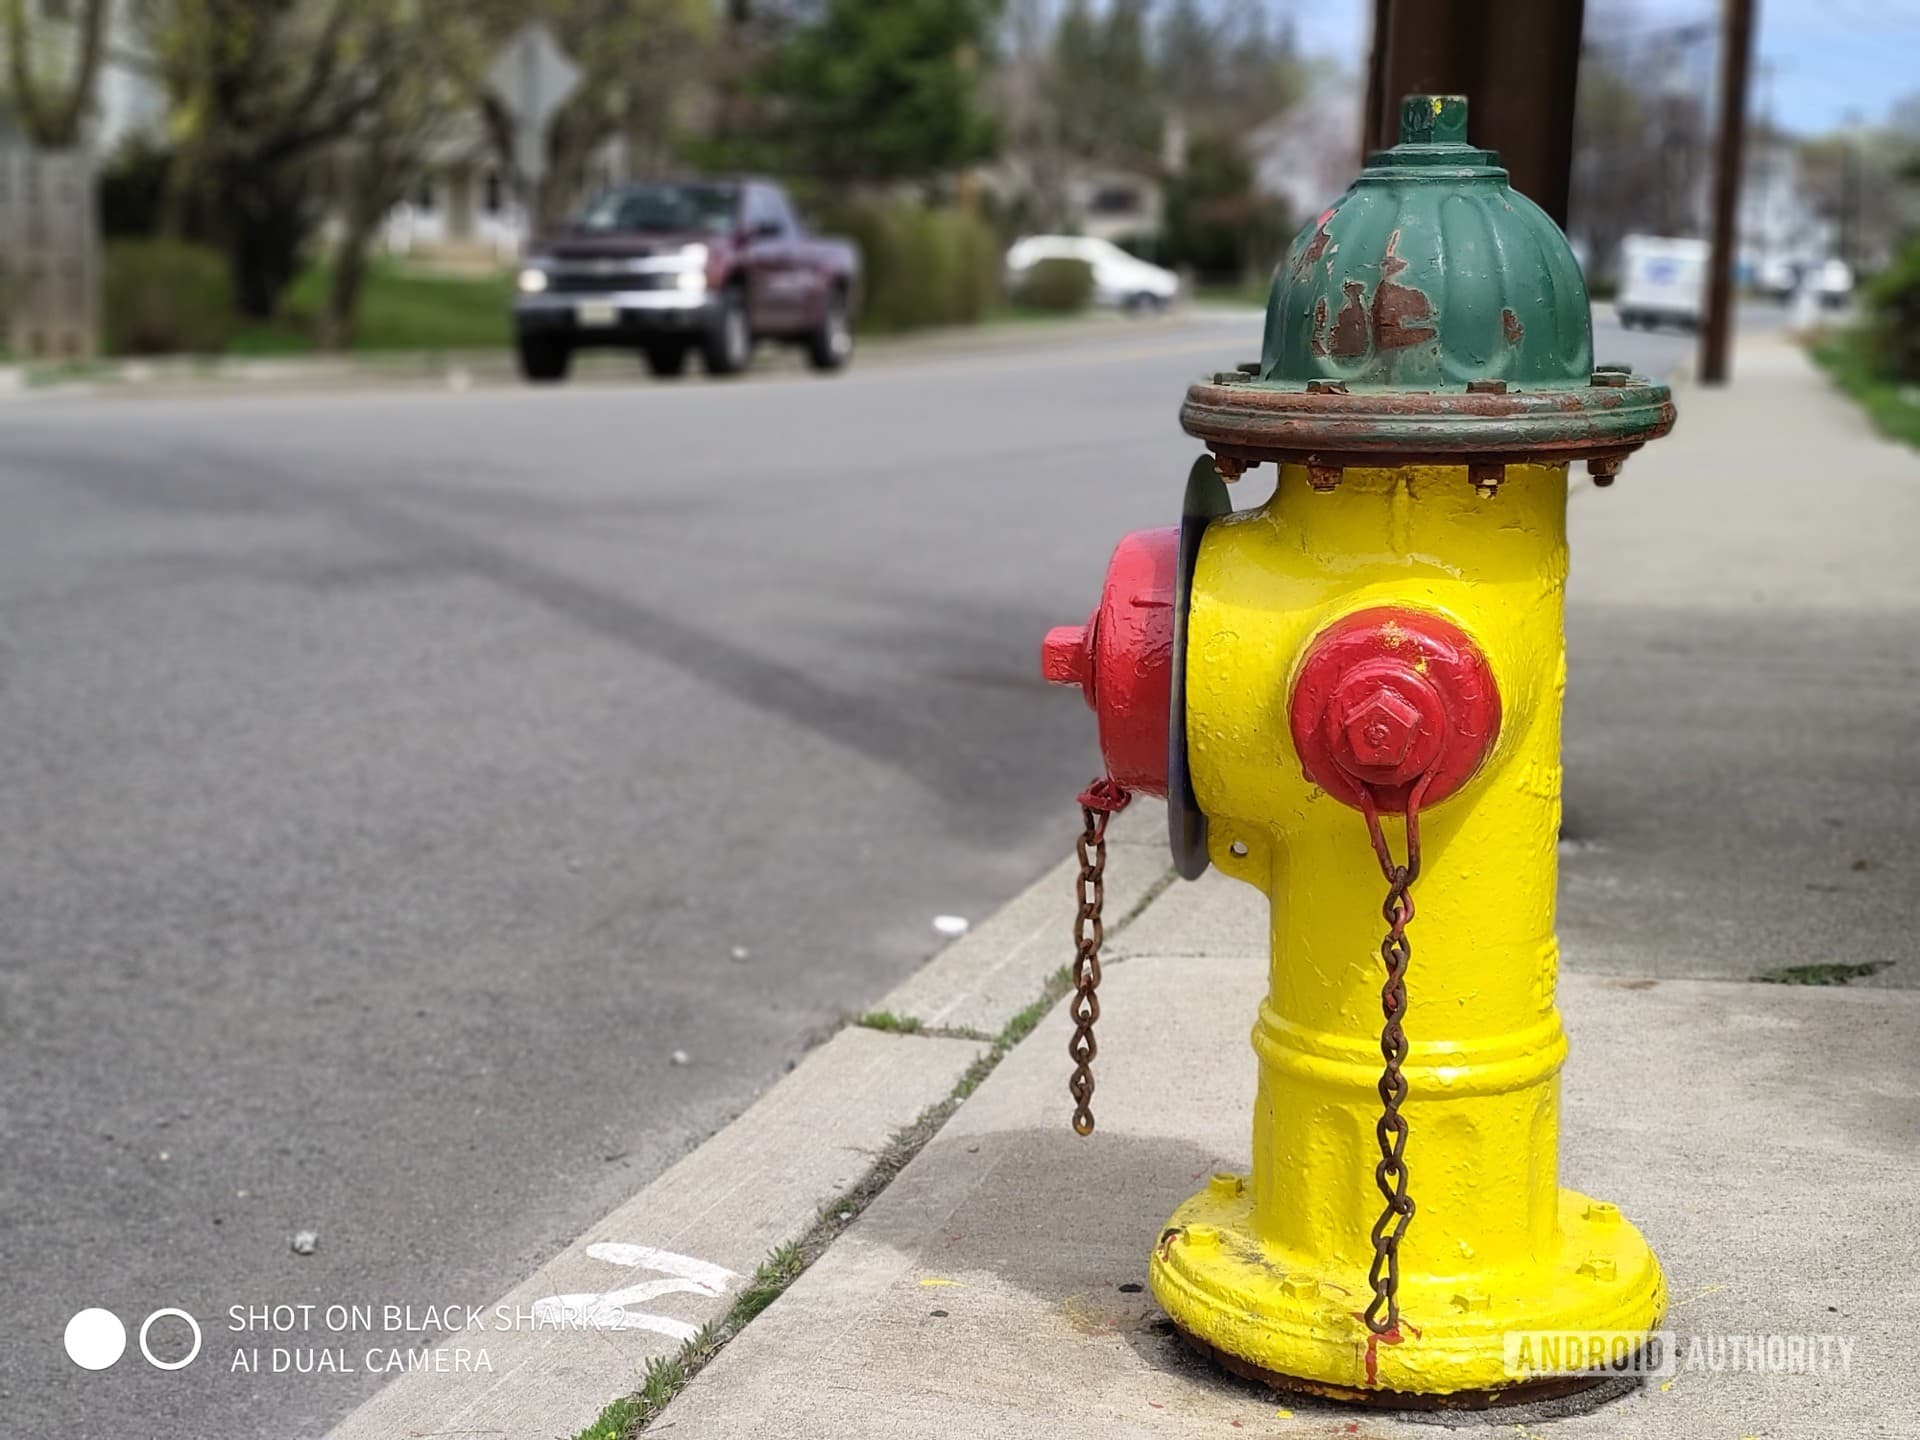 Black Shark 2 Photo Sample fire hydrant perspective